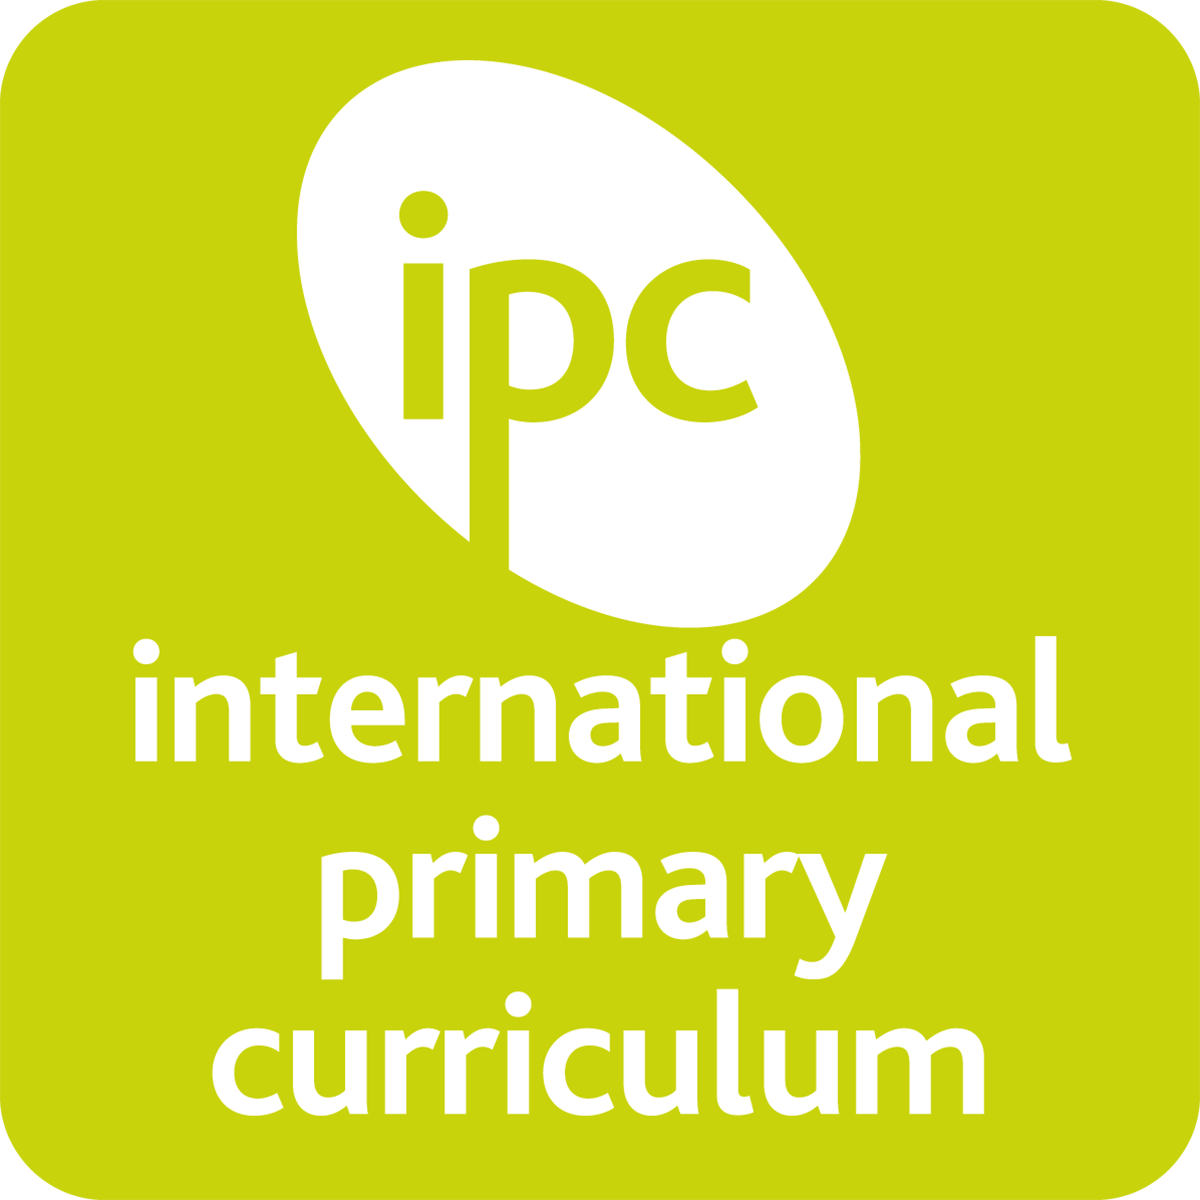 IPC Curriculum